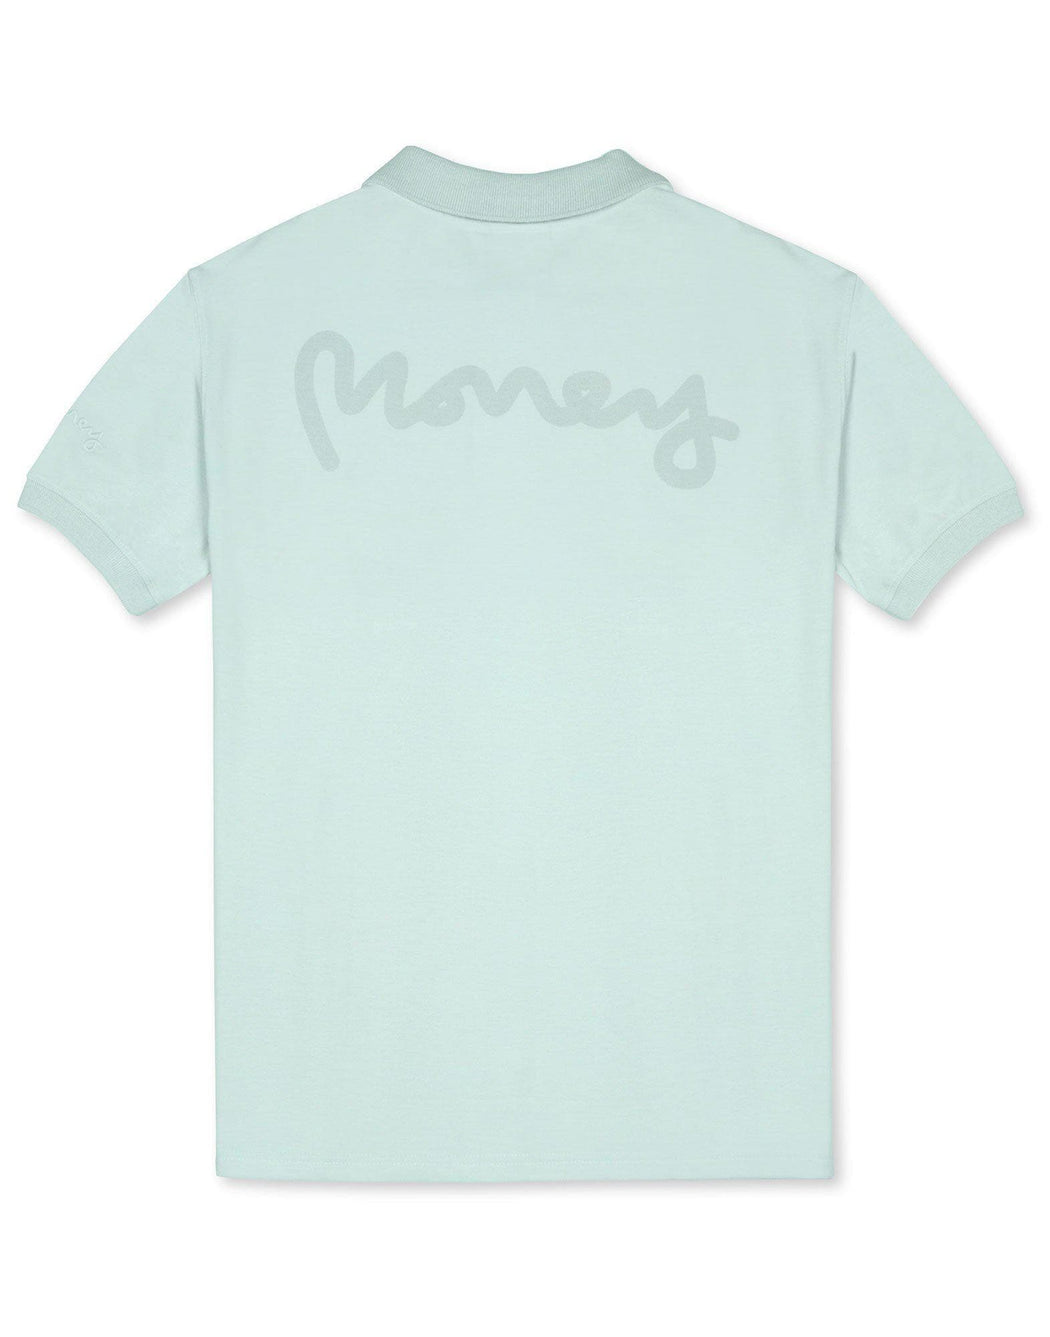 Money Clothing Zamac Polo